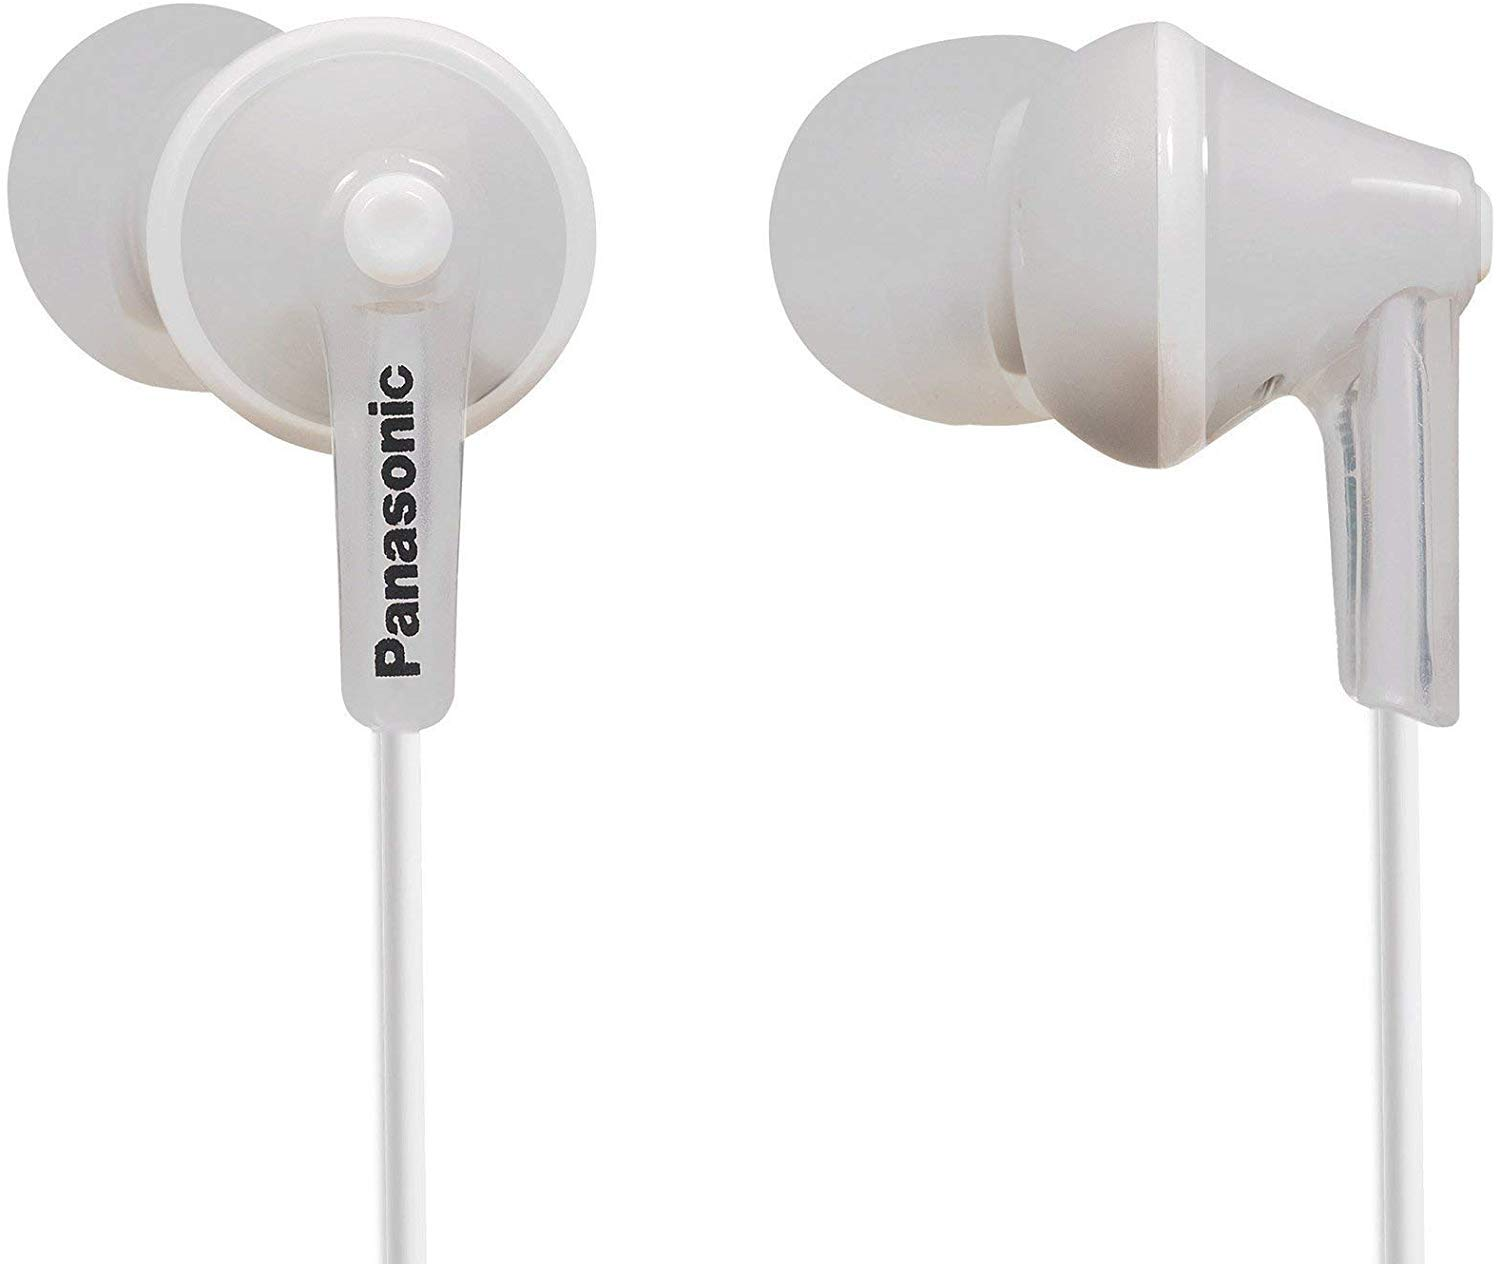 Panasonic RP-HJE125E-W Ergofit In Ear Wired Earphones with Powerful Sound, Comfortable Non-Slip Fit, Includes 3 Sized Ear Buds - White